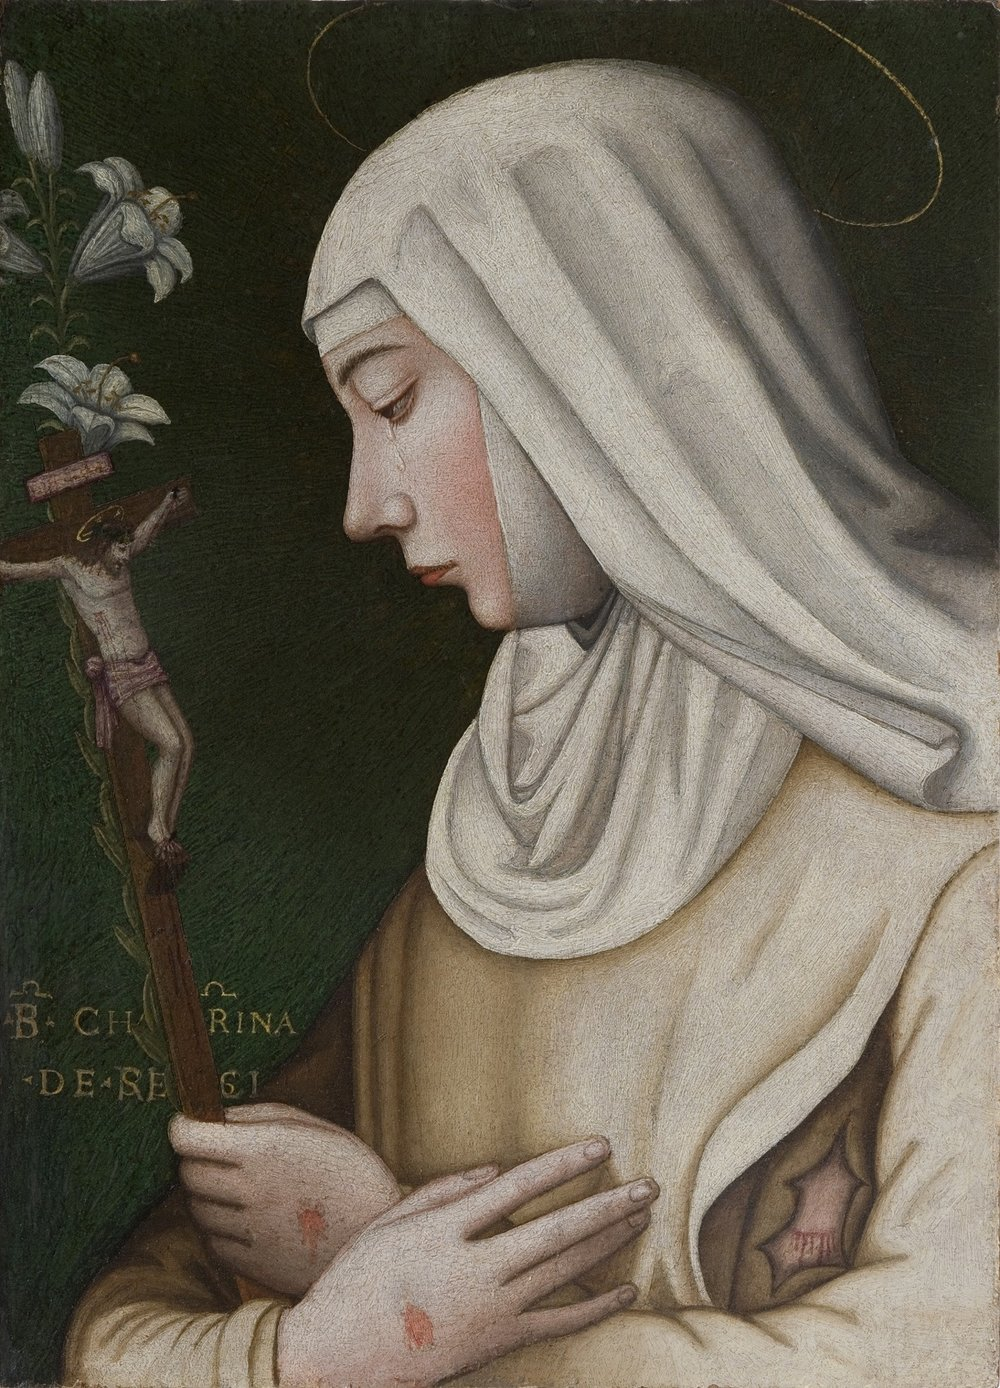 Saint Catherine with a Lily, restored 2013